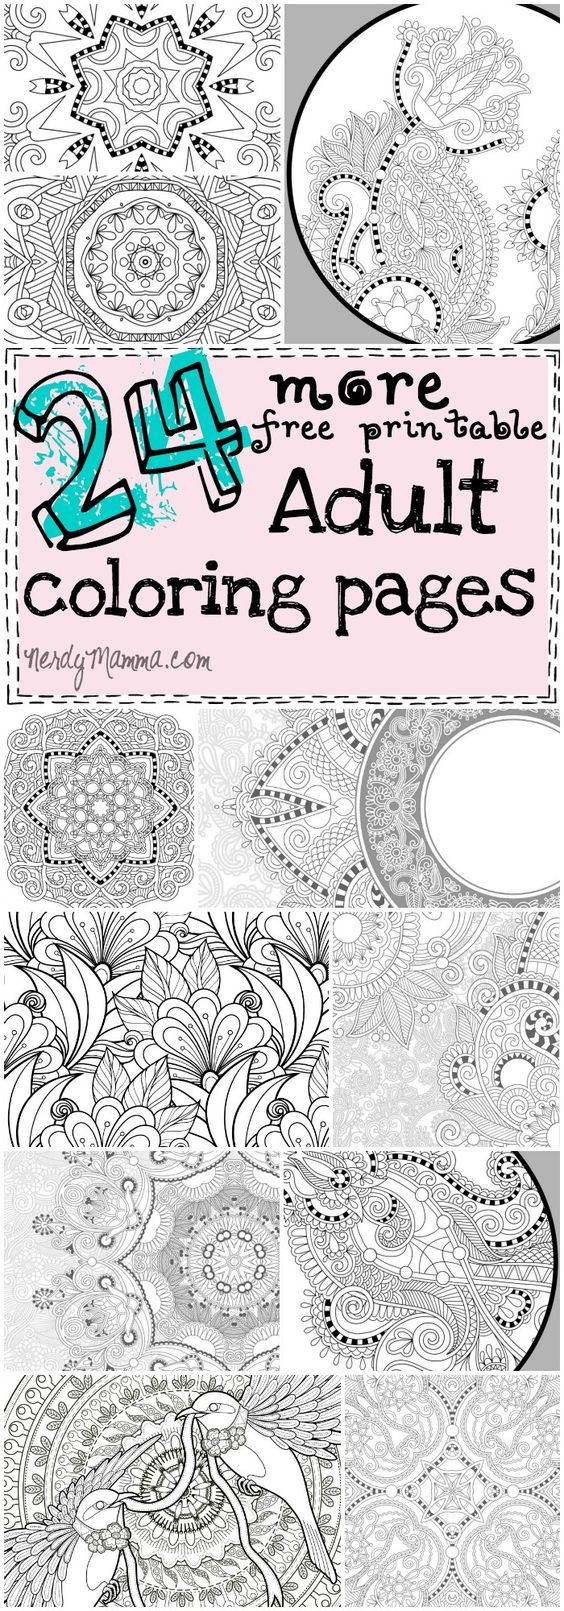 The coolest coloring book ever - This Is The Coolest Set Of Free Printable Adult Coloring Pages Ever There S For The Top Rated Adult Coloring Books And Writing Utensils Including